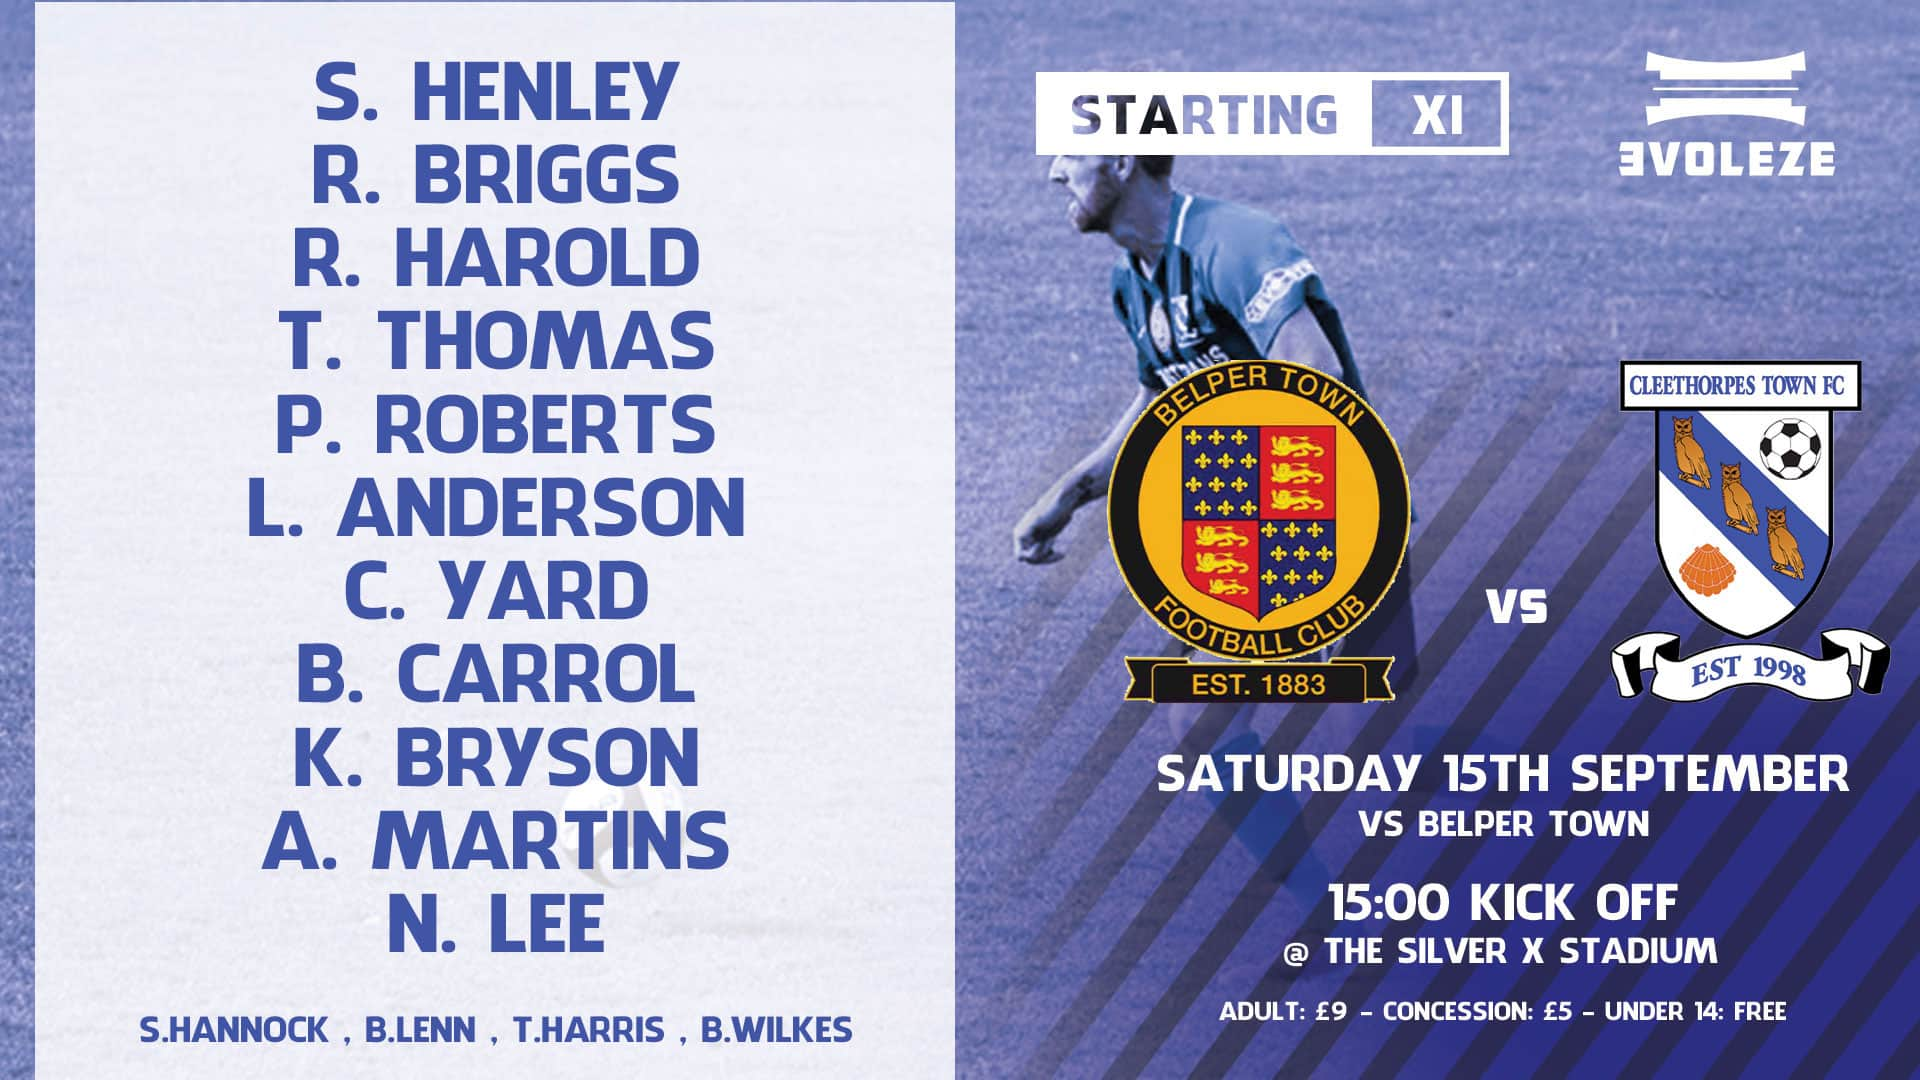 starting xi - Cleethorpes Town FC